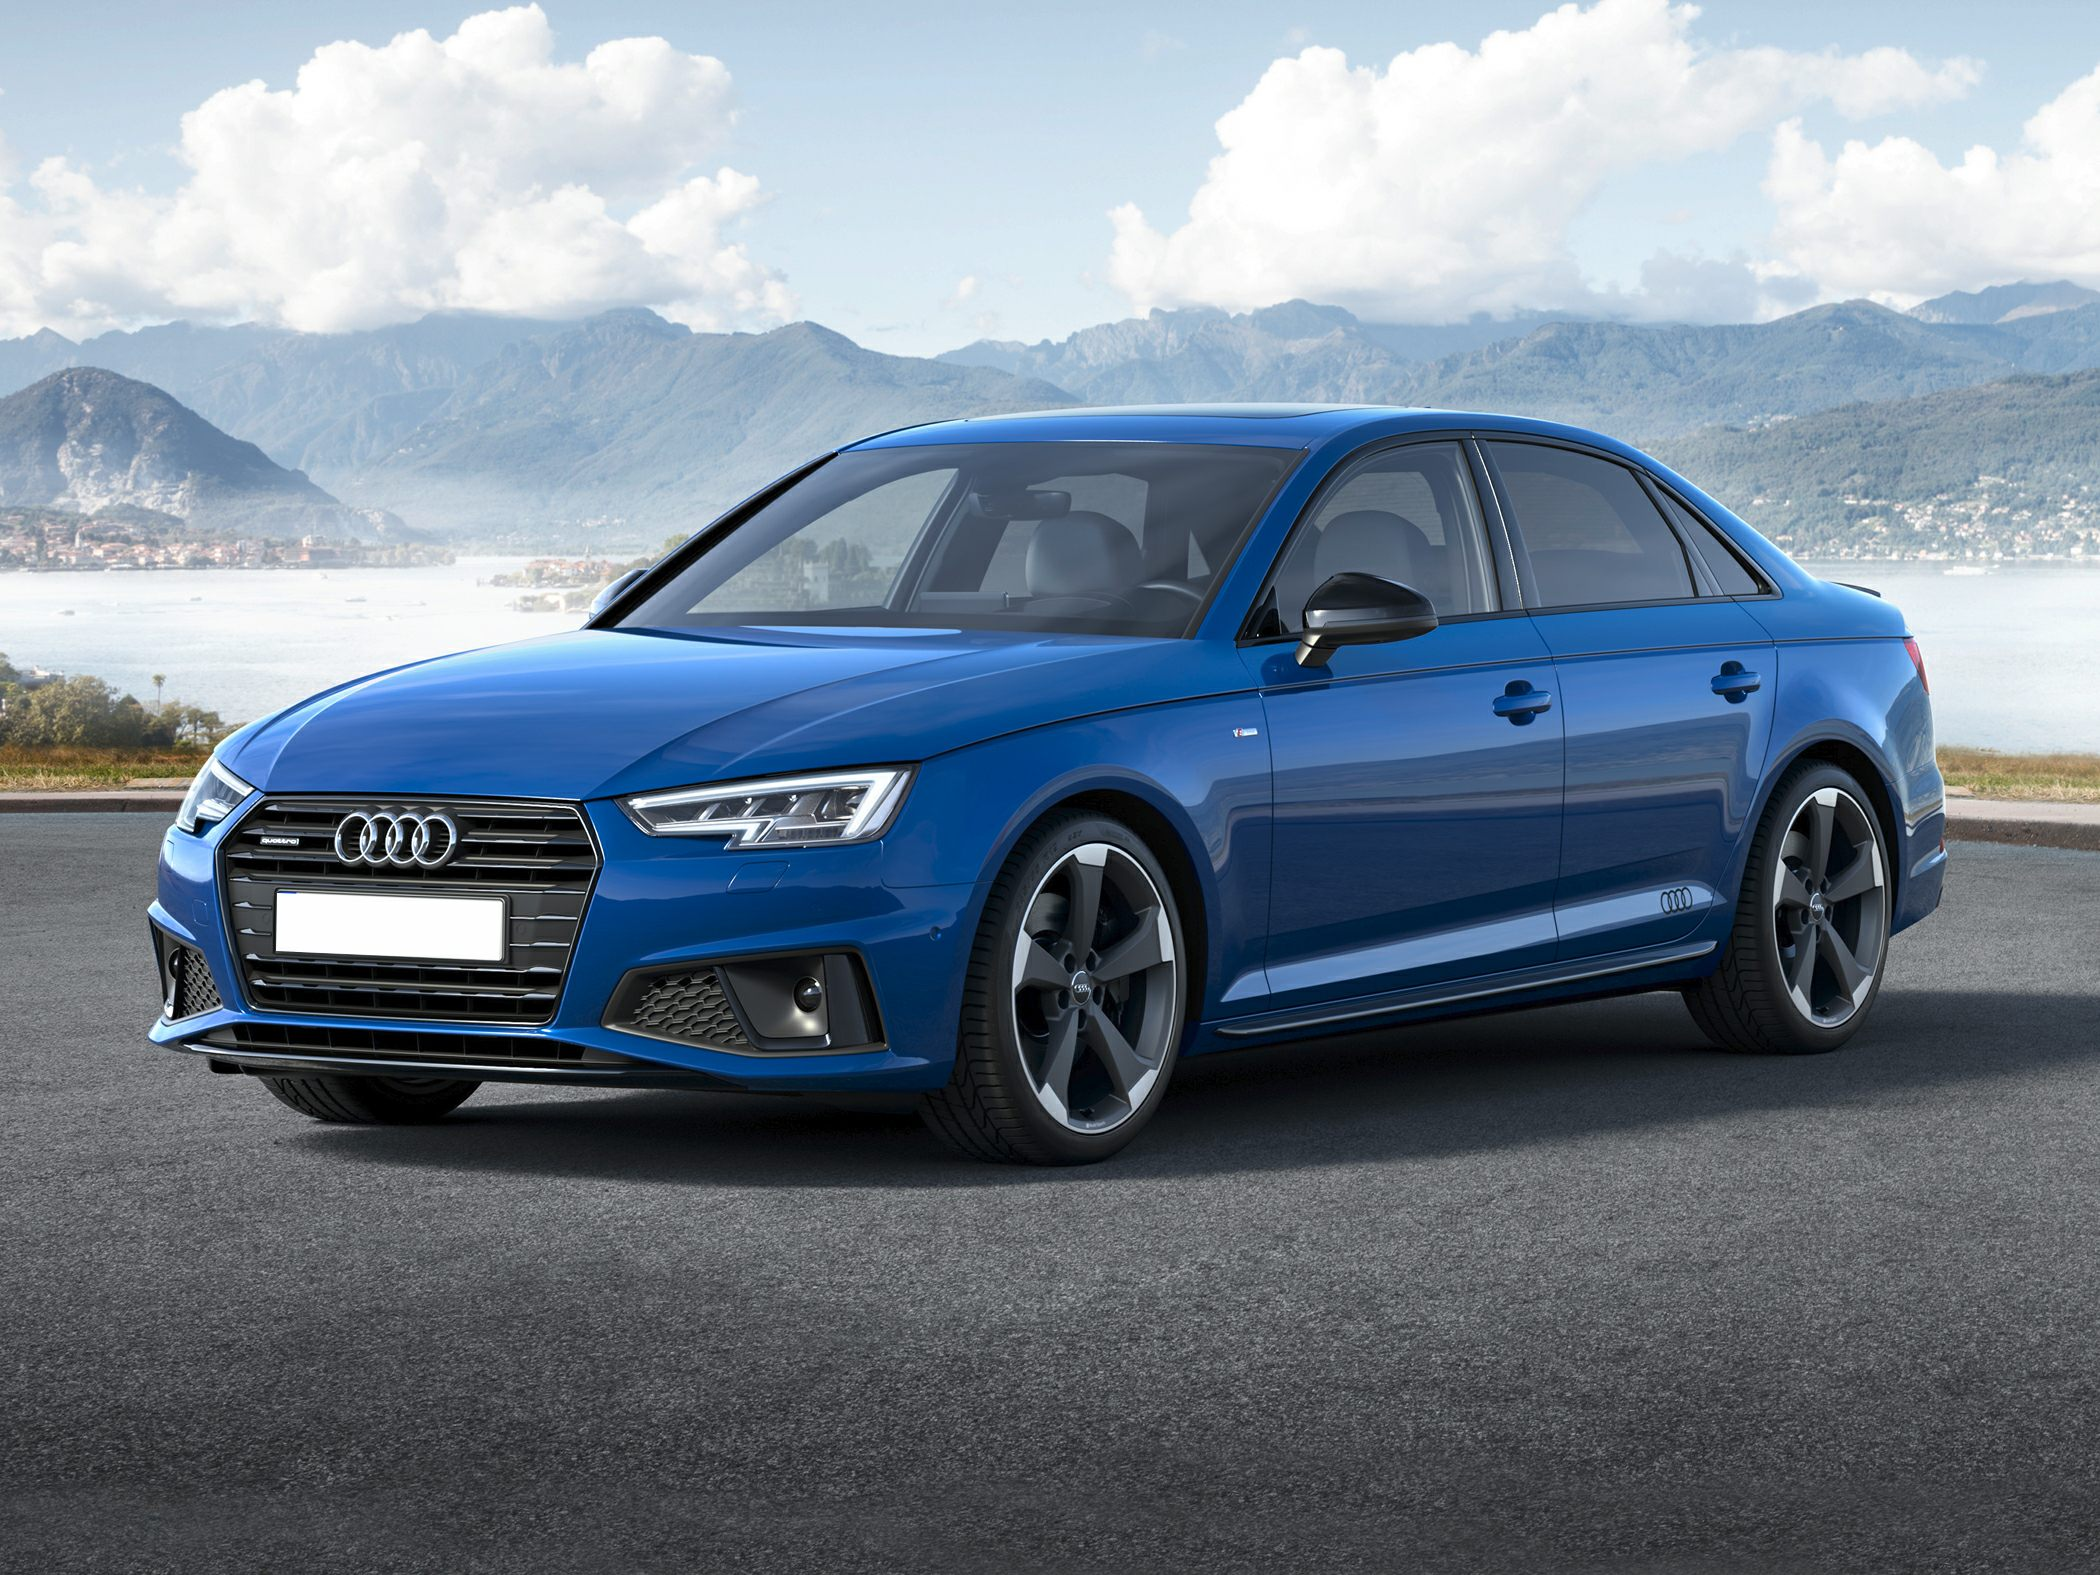 2020 Audi A4 Release Date, Interior, Facelift, And Price >> 2019 Audi A4 Deals Prices Incentives Leases Overview Carsdirect